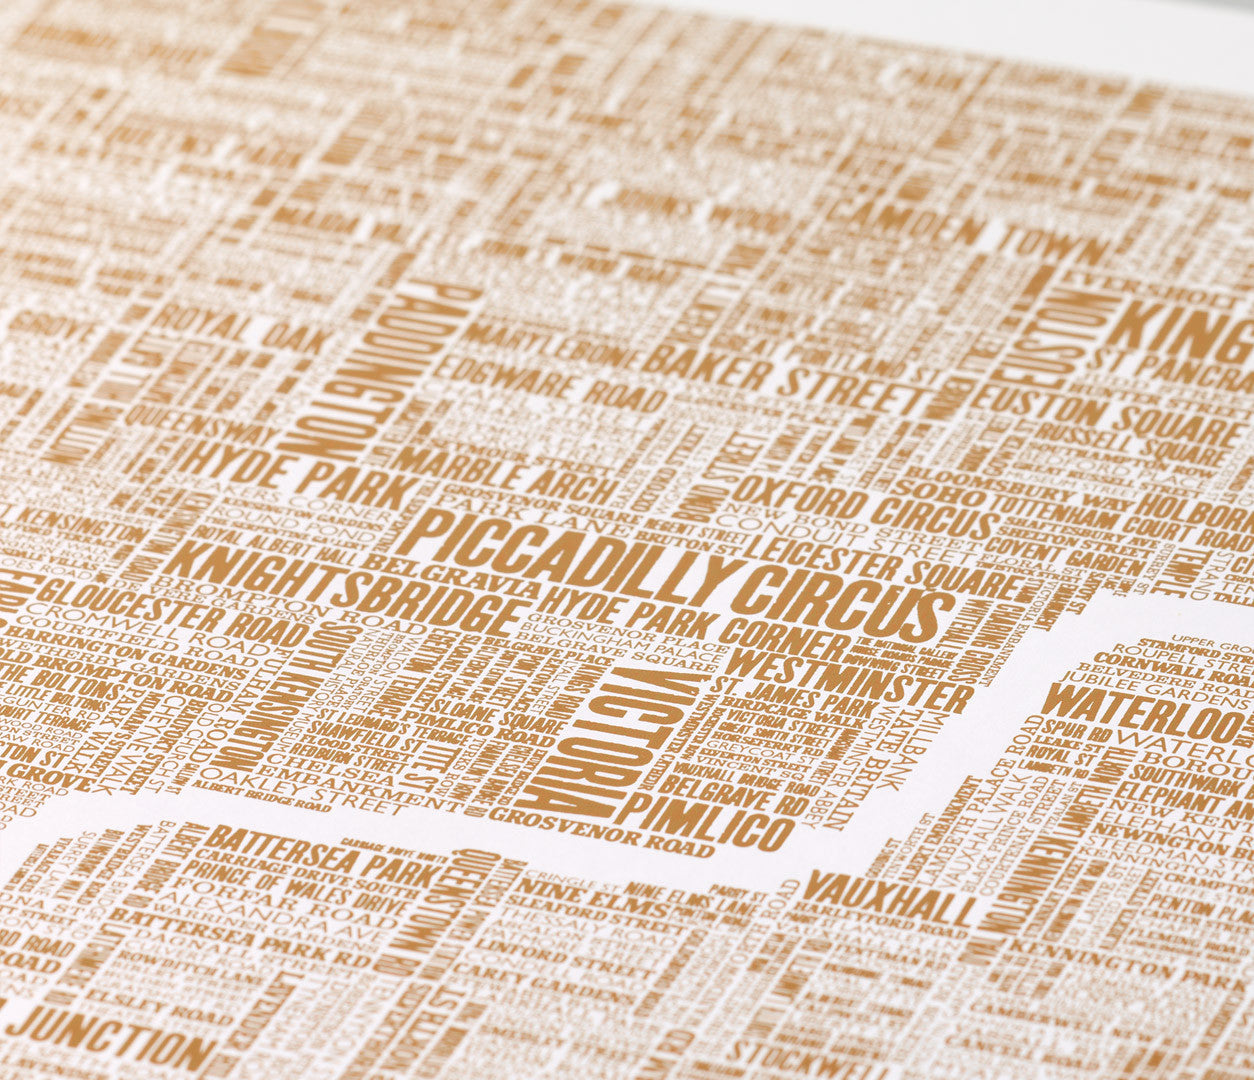 'London' Foil Blocked Type Map Limited Edition Print in Bronze